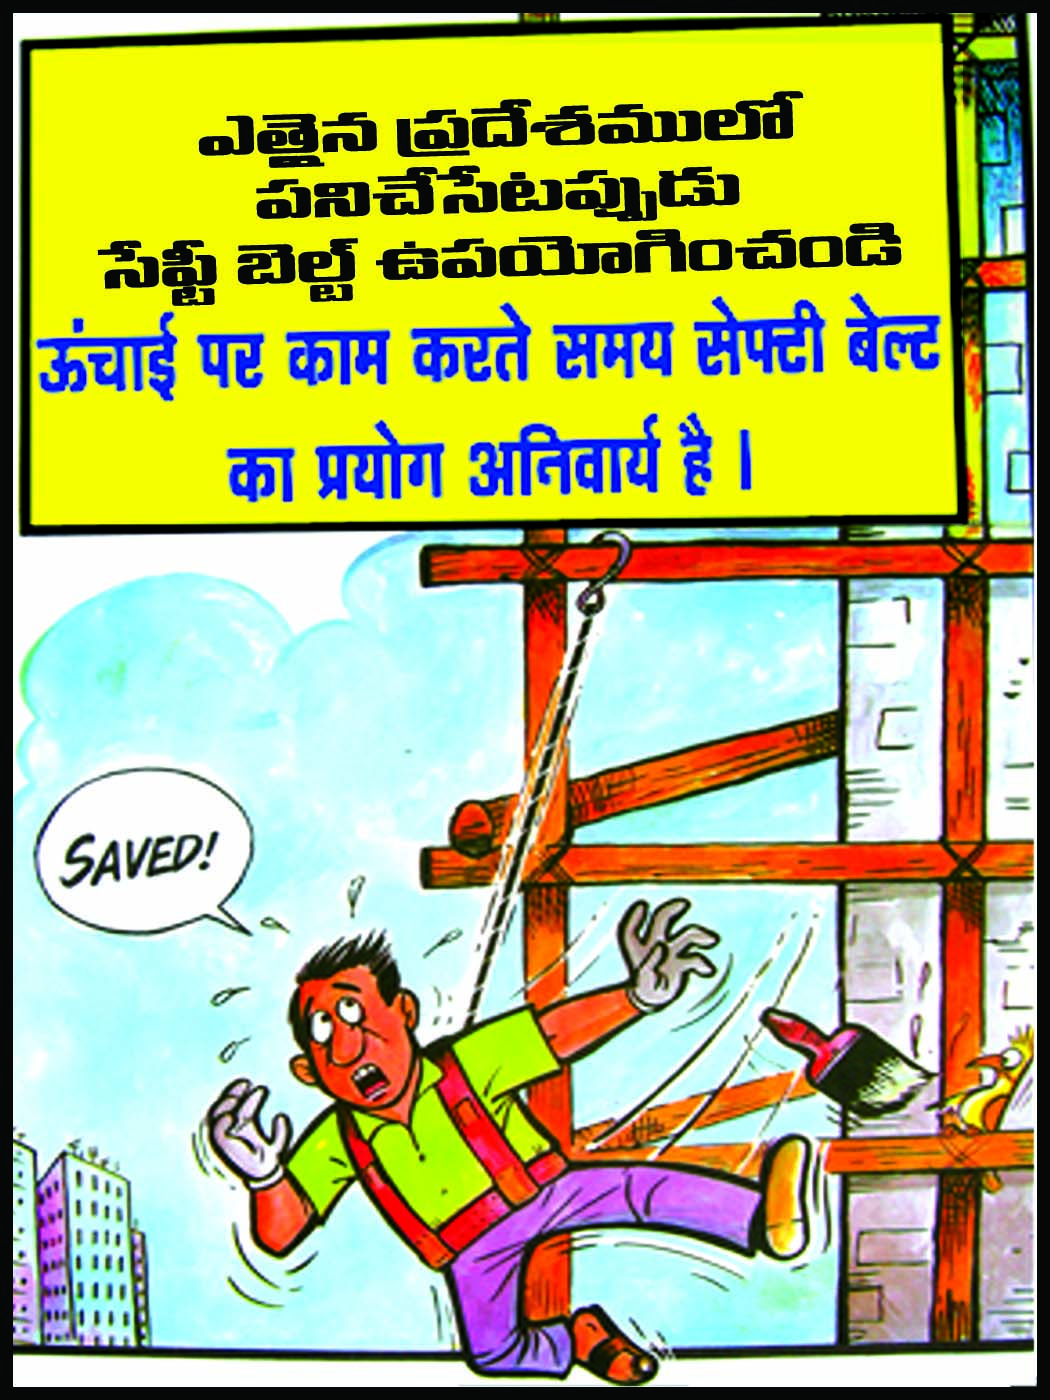 Heat Stress Safety Poster In Hindi